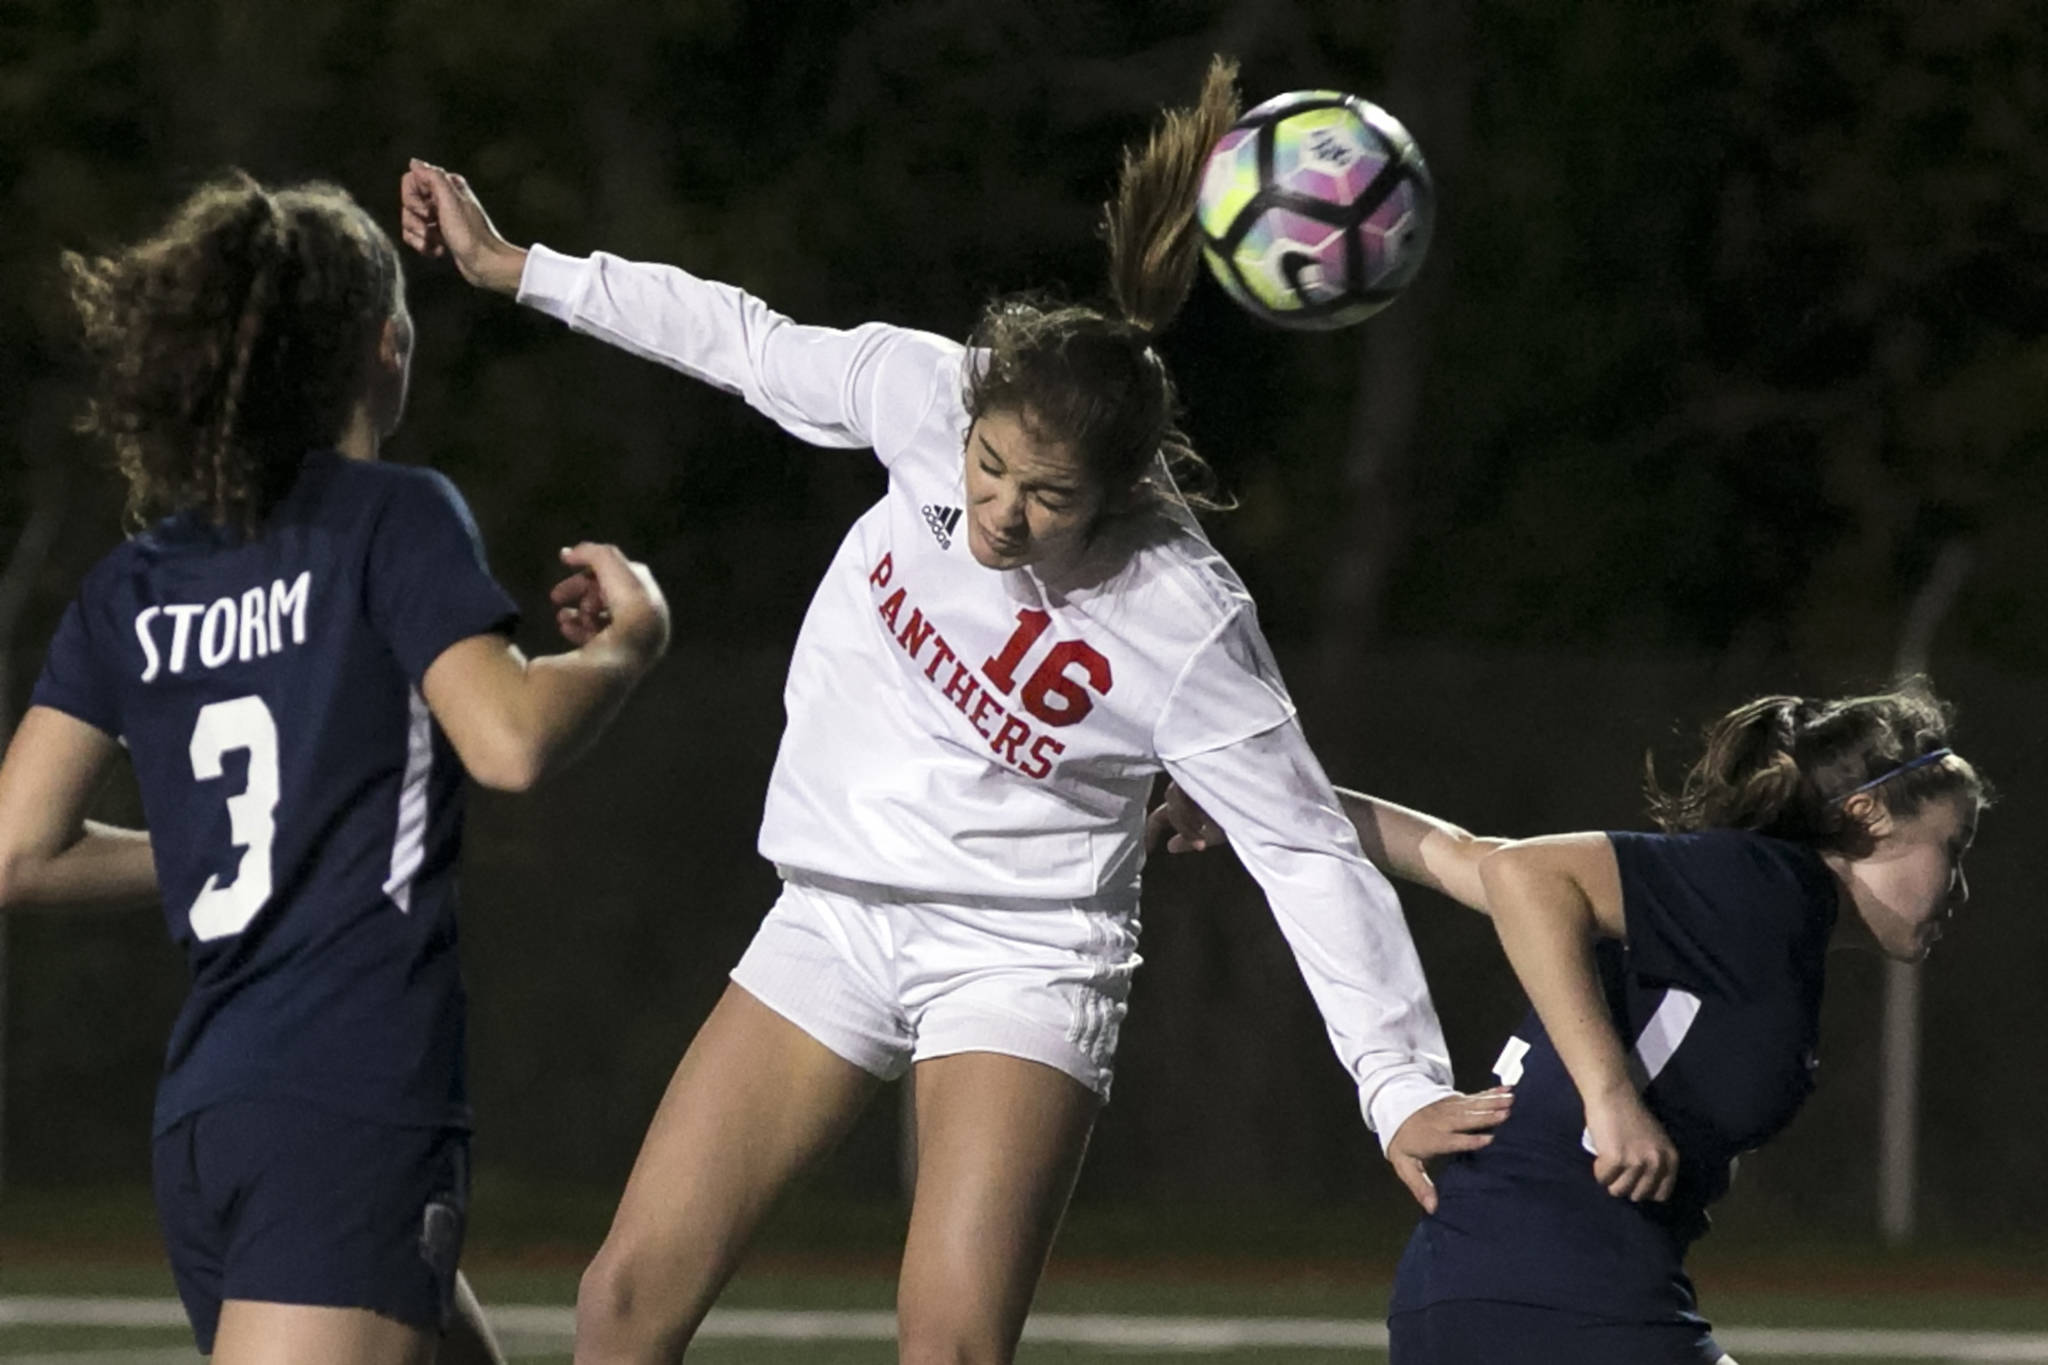 Snohomish's Taylor Khorrami makes a header for a goal with Squalicum's Audra Johnson (left) and Jamie Dierdorf defending during the NW District 1 3A Soccer Tournament at Shoreline Stadium on Oct. 30. (Kevin Clark / The Herald)